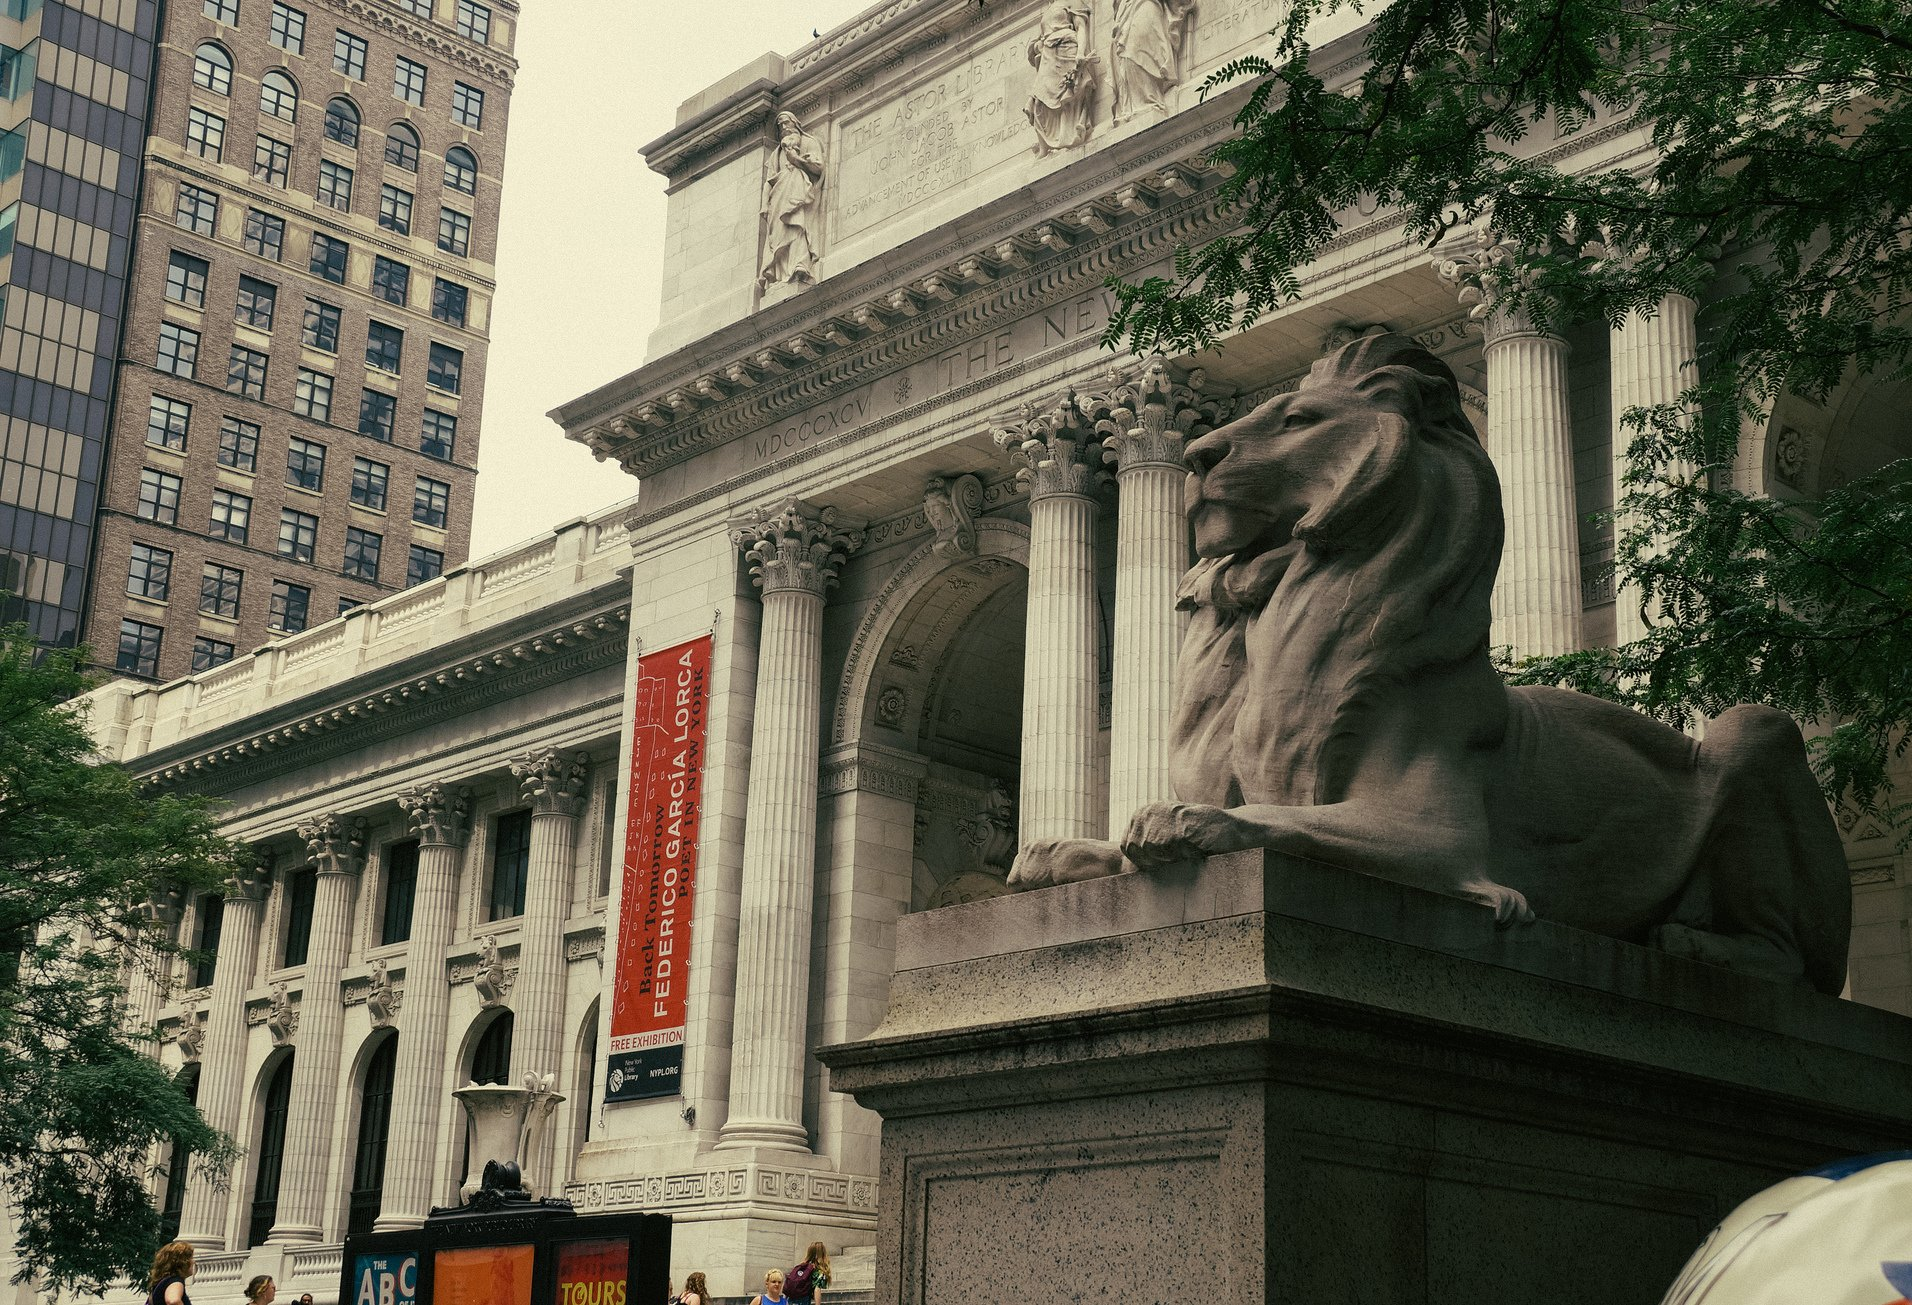 Reading between the lions: A history of the New York Public